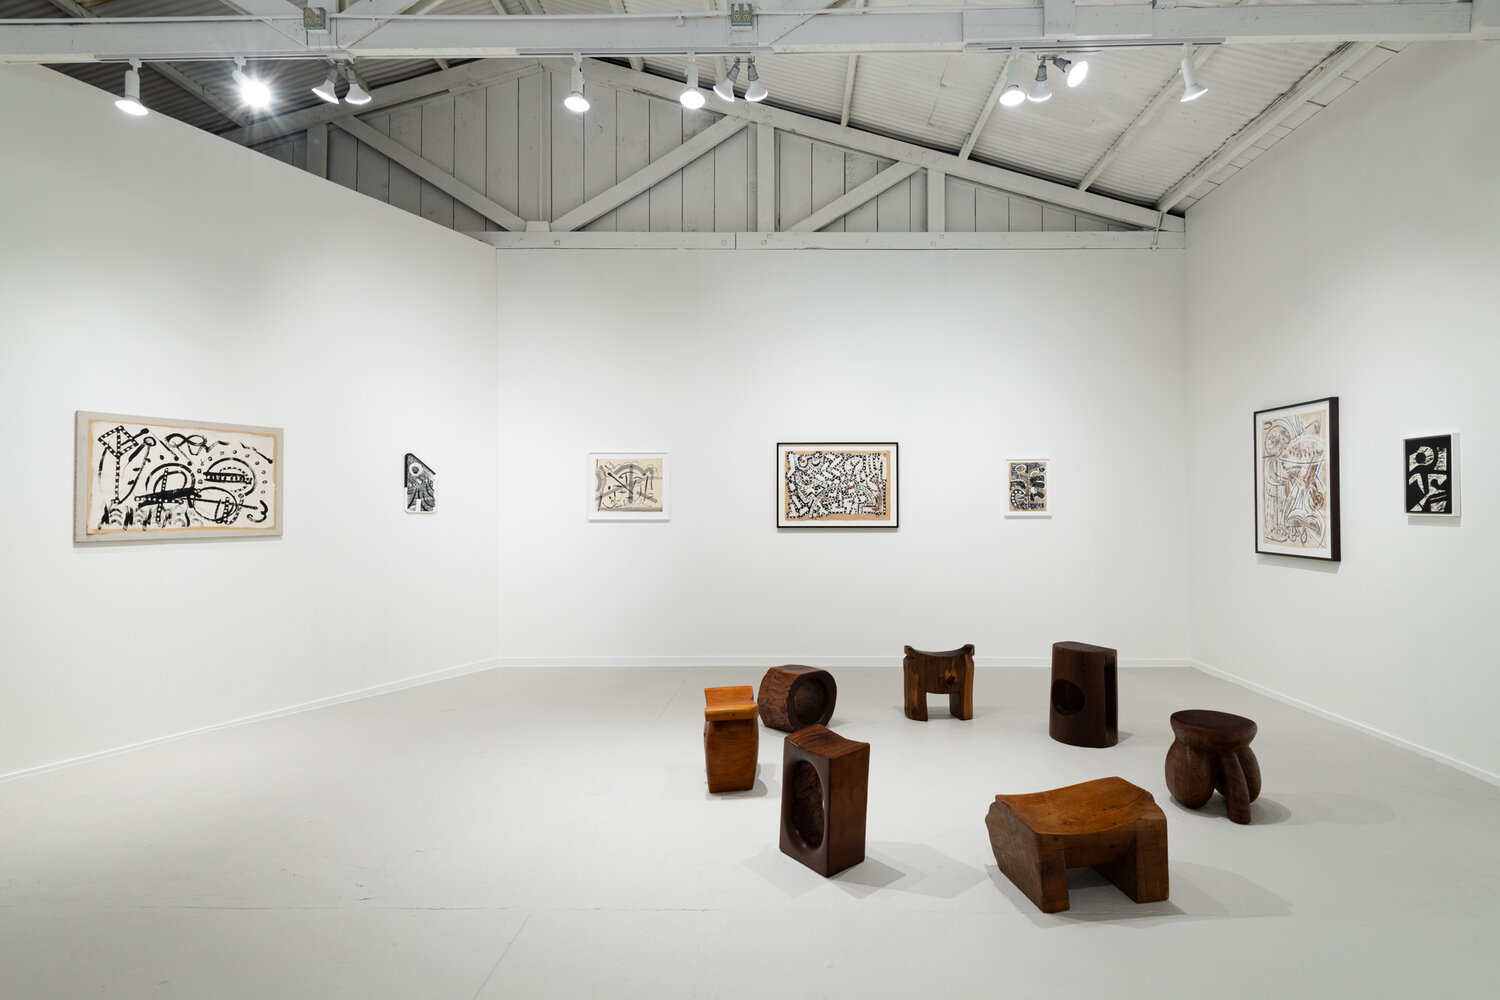 In a circle on a white floor, seven carved wooden sculptures of different shapes and sizes are arranged. Some rectangular, some cylindrical, some squatting, some more upright. On the white walls behind these, seven pieces of art hang on the walls.